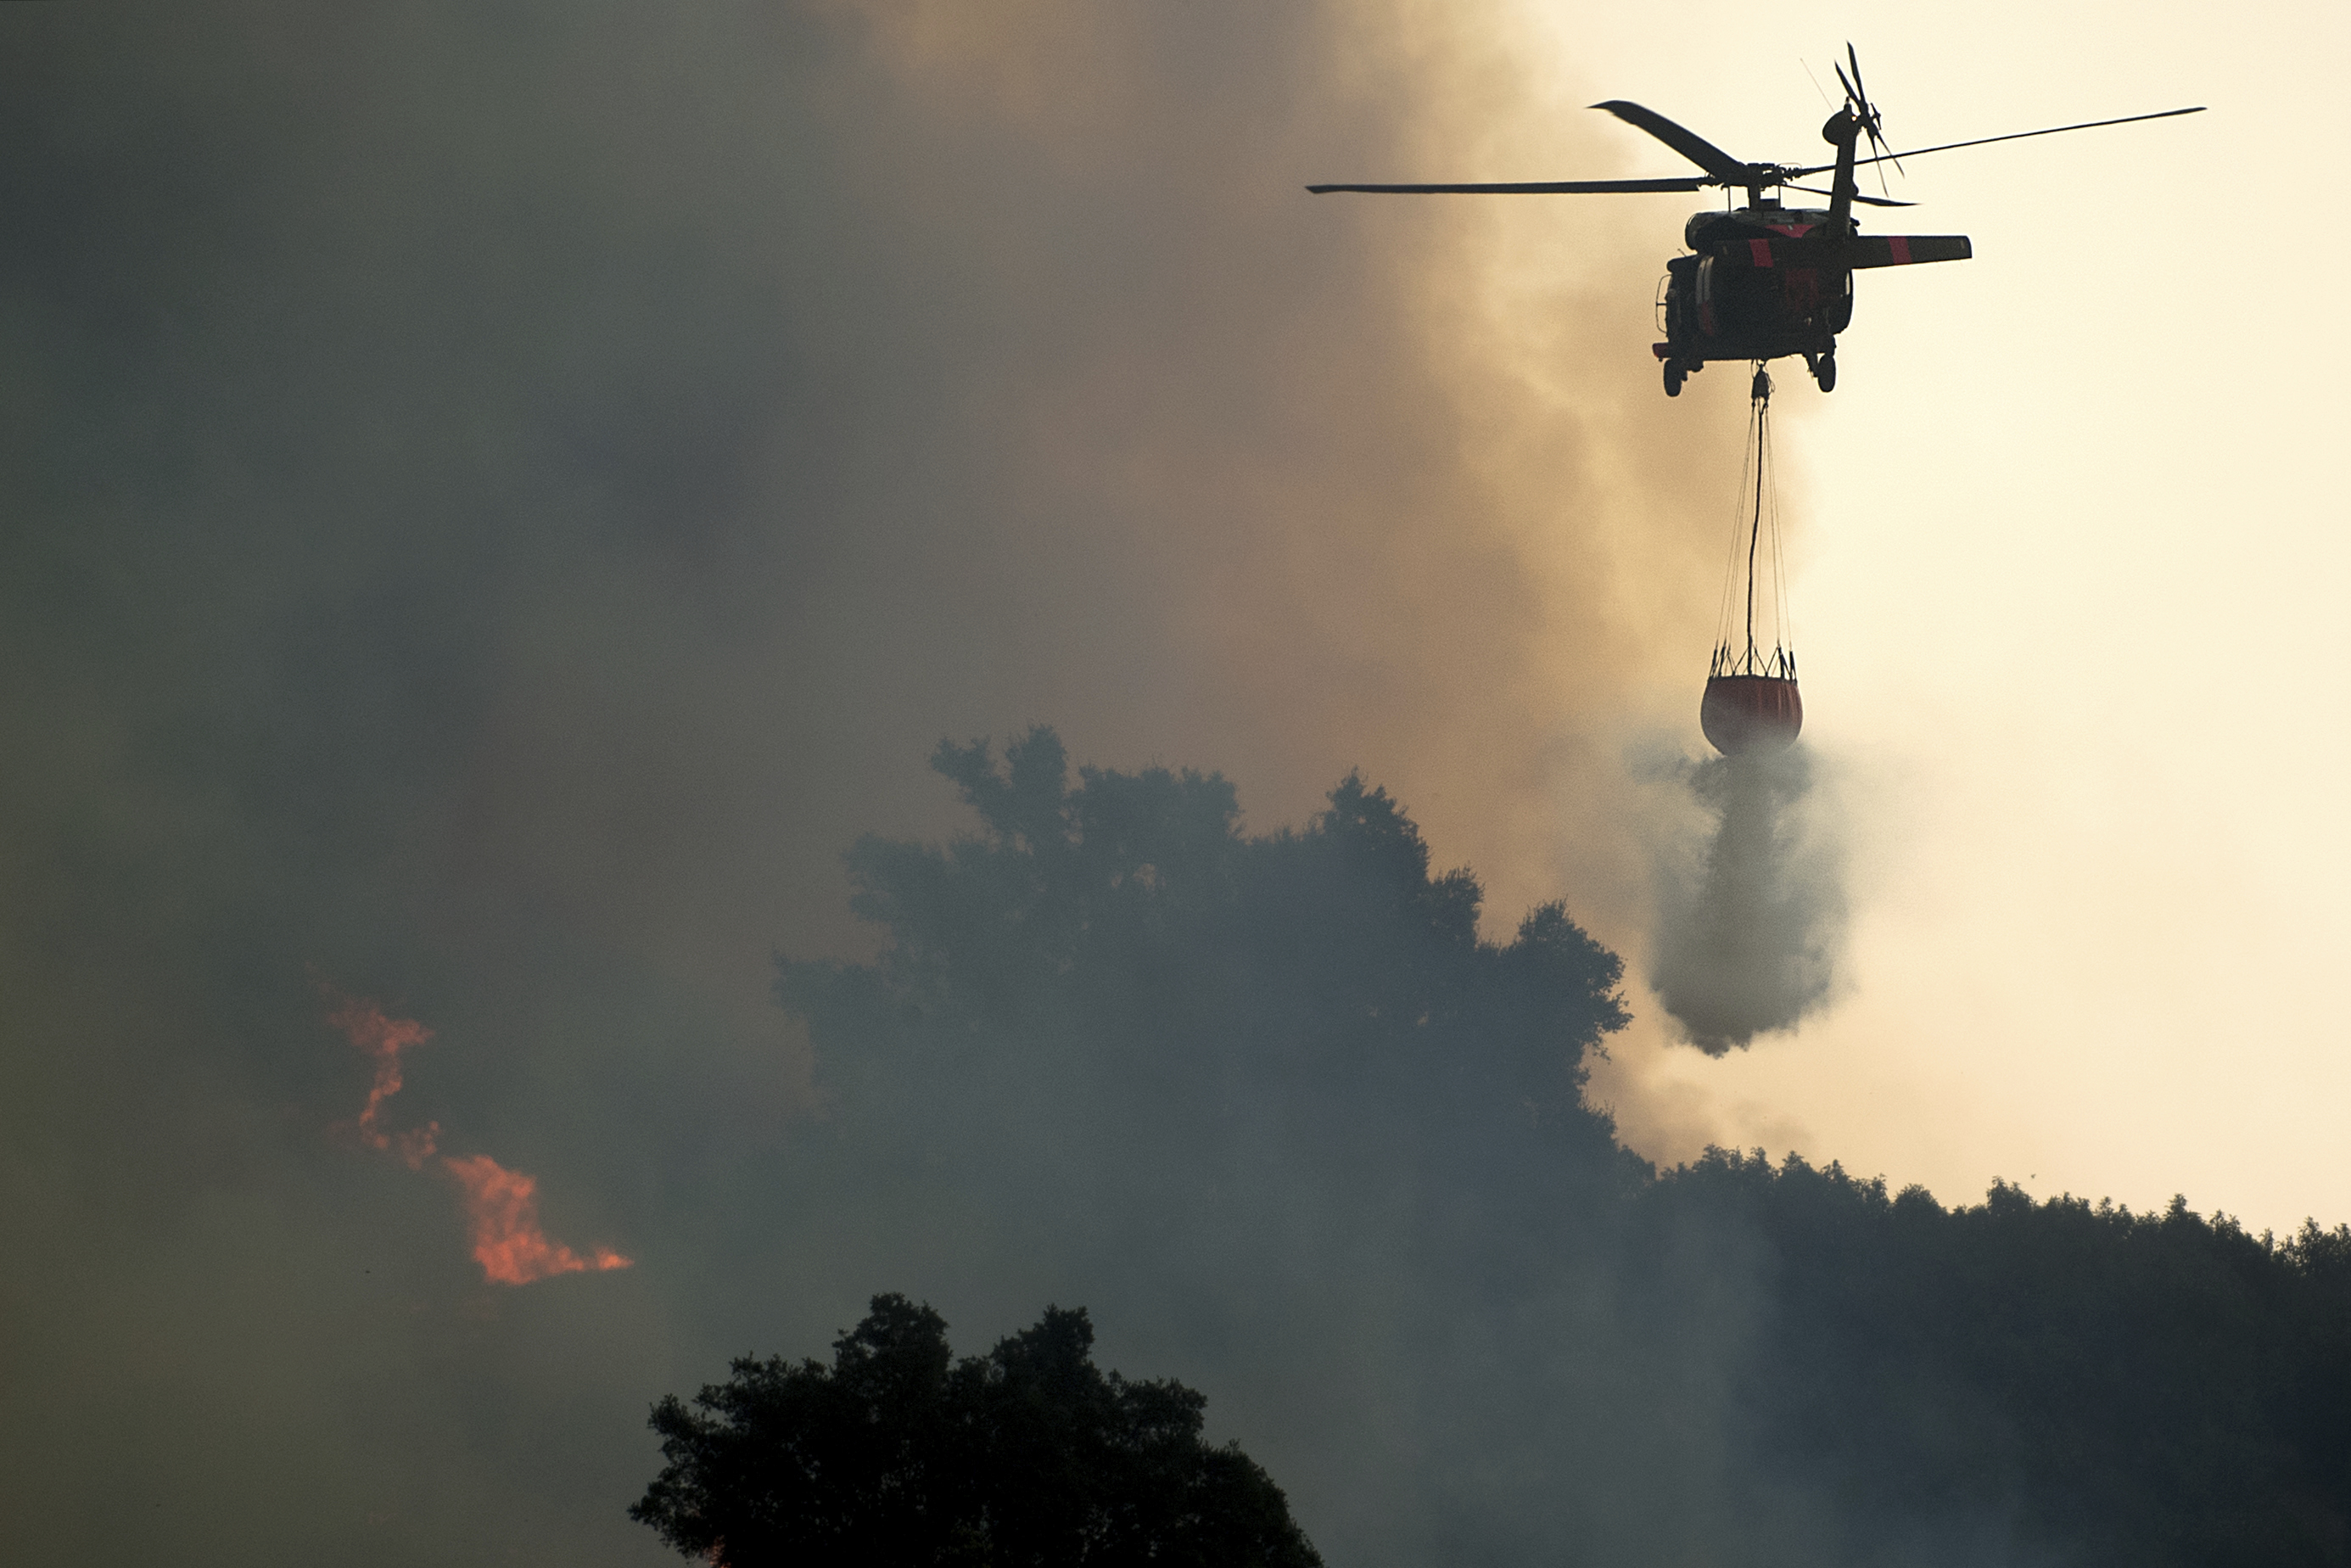 <div class='meta'><div class='origin-logo' data-origin='none'></div><span class='caption-text' data-credit='Noah Berger/AP Photo'>A helicopter drops water while battling the Thomas fire in Ojai, Calif., on Dec. 7.  Ojai, a scenic mountain town, is known for its boutique hotels and New Age spiritual retreats.</span></div>